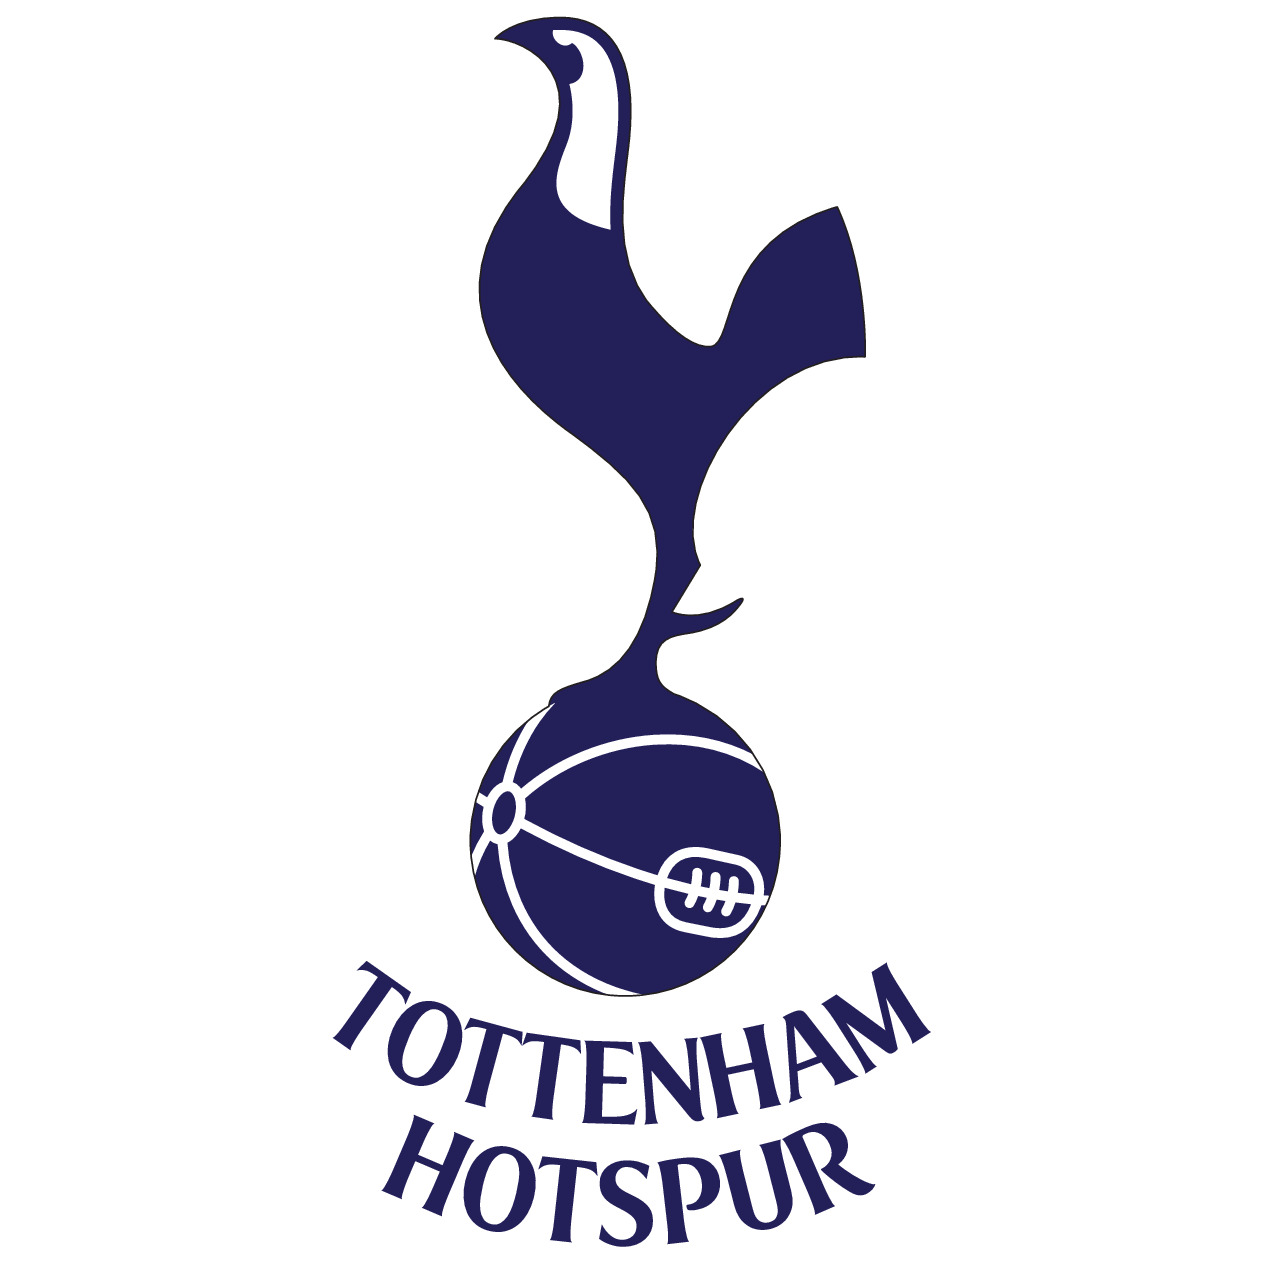 Premier League Chelsea Vs Tottenham Hotspur Live Score Commentary And Updates Sportstar